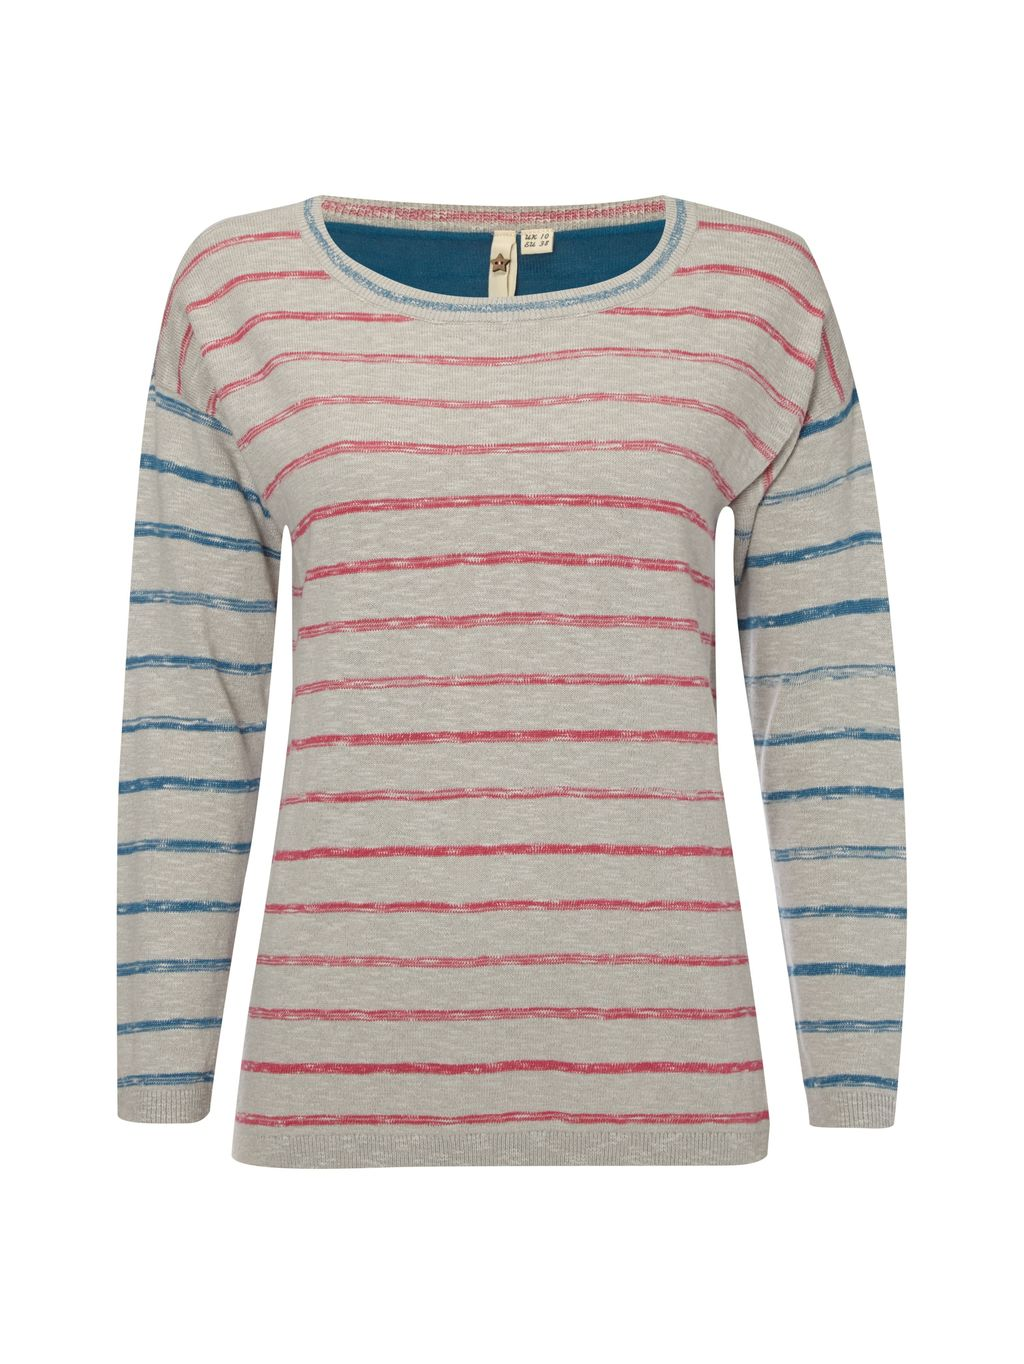 Nepalese Stripe Jumper, Blue - neckline: round neck; pattern: horizontal stripes; style: standard; predominant colour: stone; occasions: casual, creative work; length: standard; fibres: cotton - mix; fit: standard fit; sleeve length: long sleeve; sleeve style: standard; texture group: knits/crochet; pattern type: knitted - fine stitch; pattern size: big & busy (top); multicoloured: multicoloured; season: s/s 2016; wardrobe: highlight